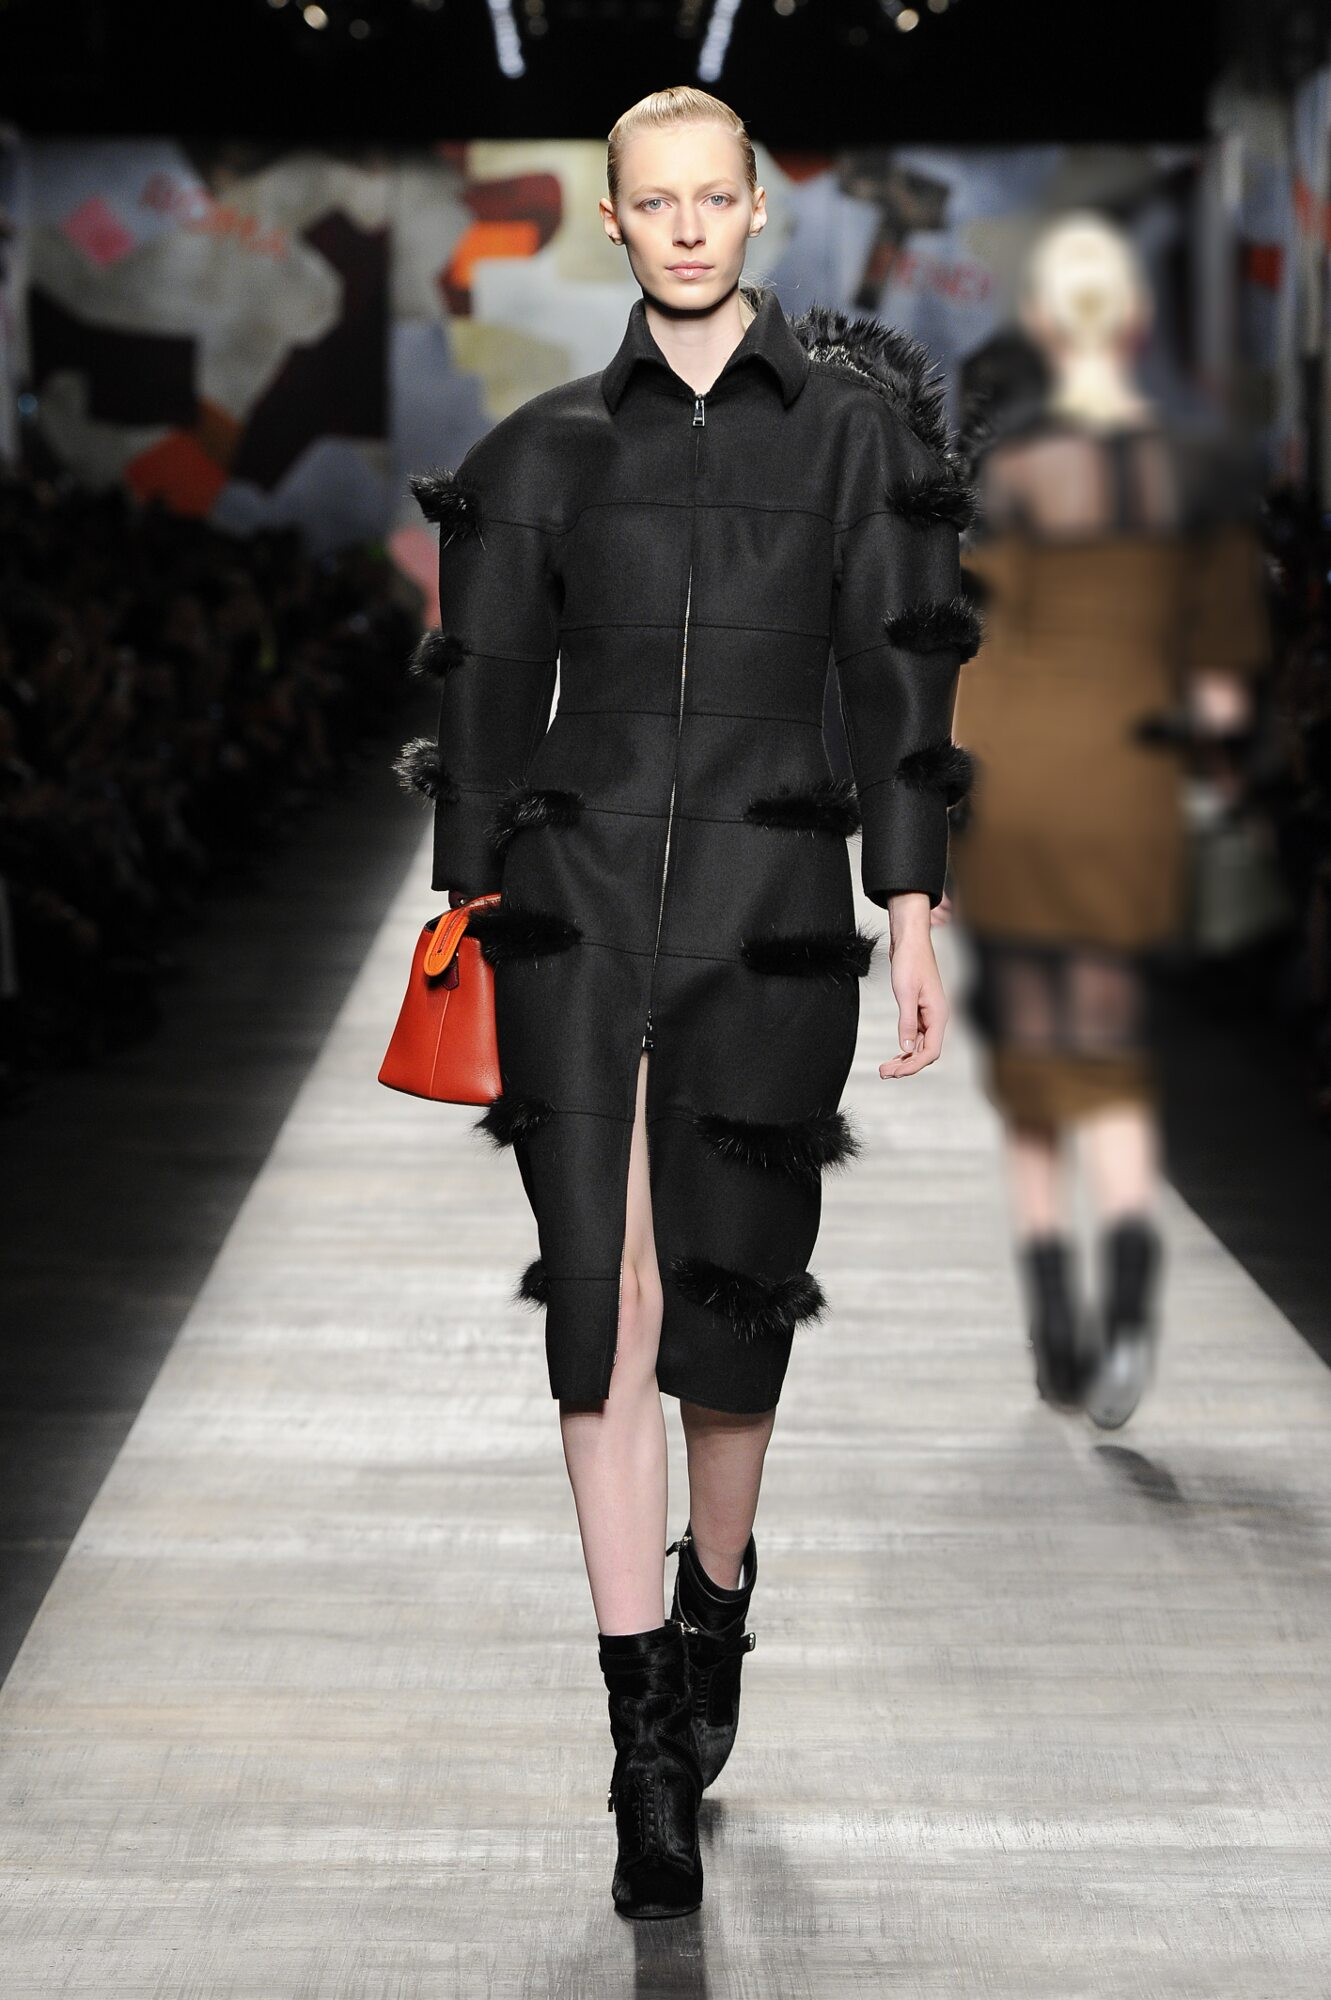 Fashion Show Winter 2014 Winter Fashion Show Fendi